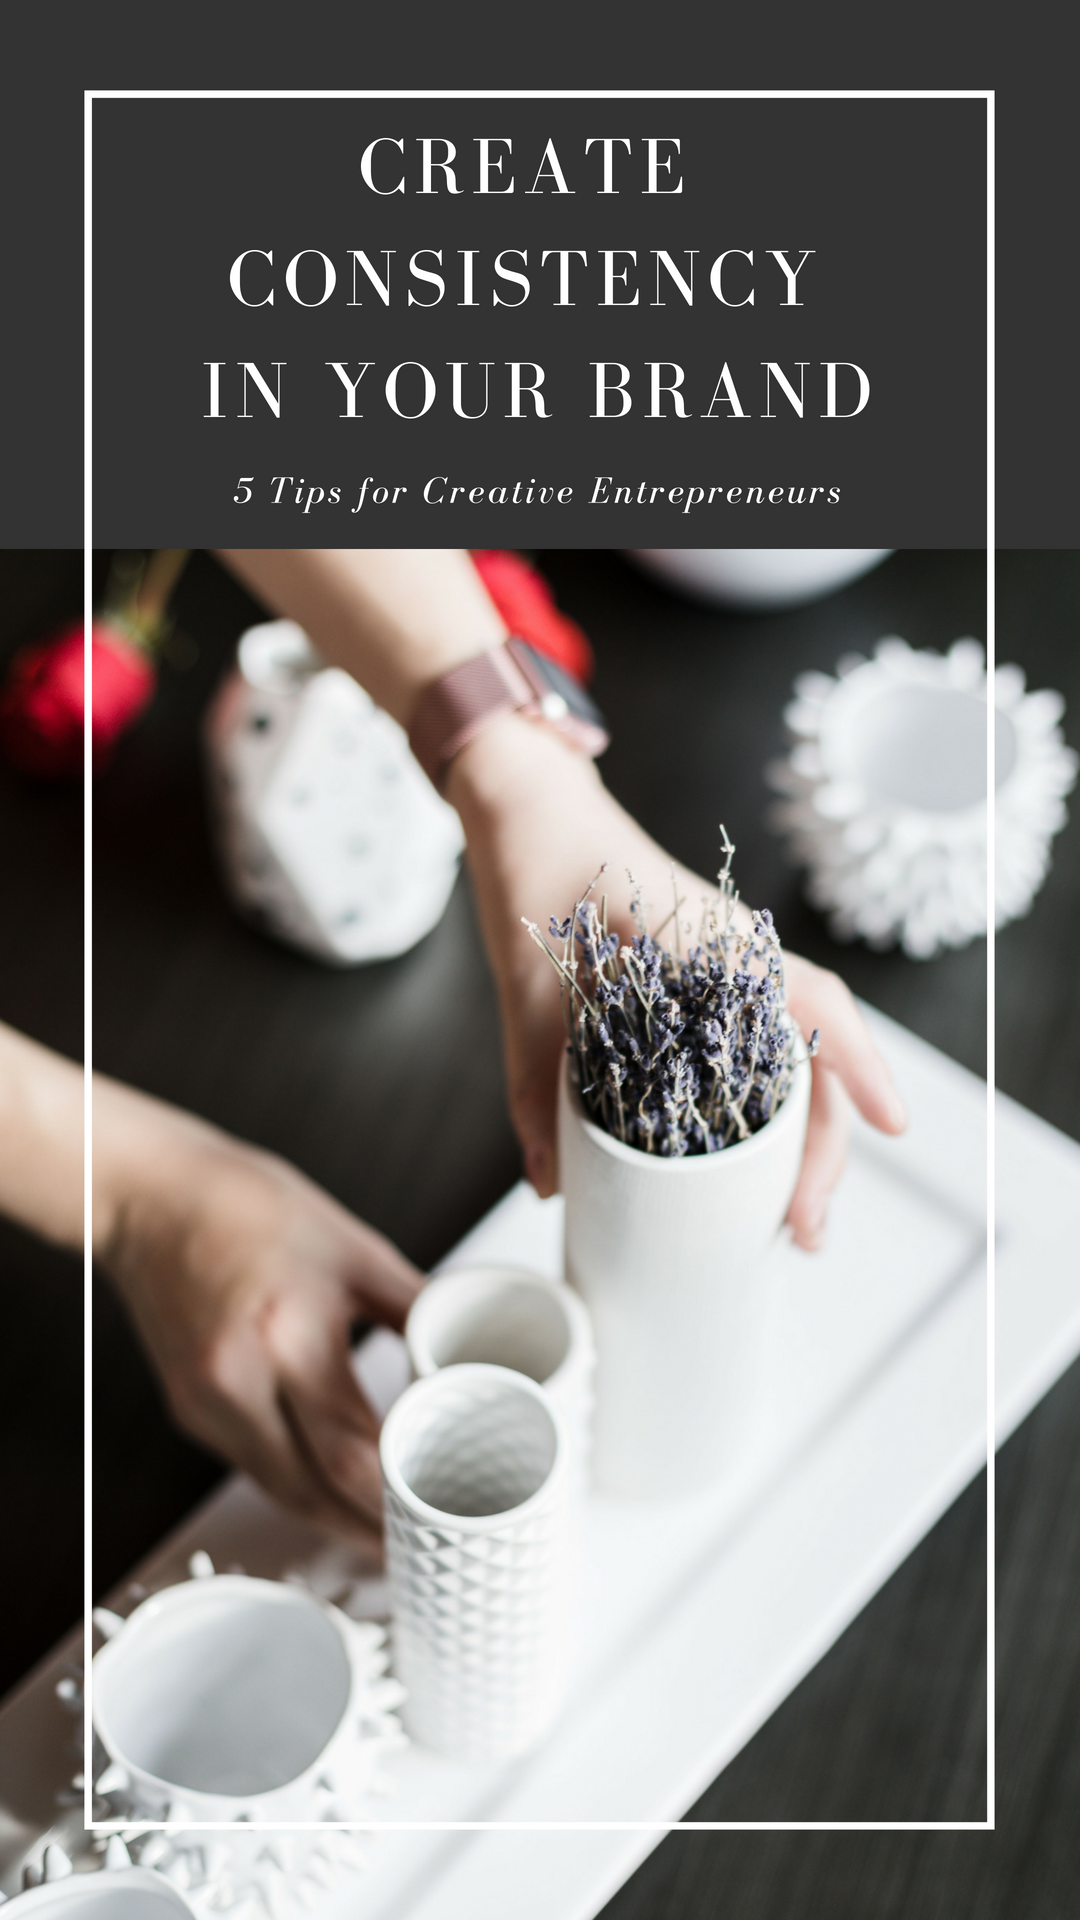 5 tips for creative entrepreneurs to create consistency in their personal brand